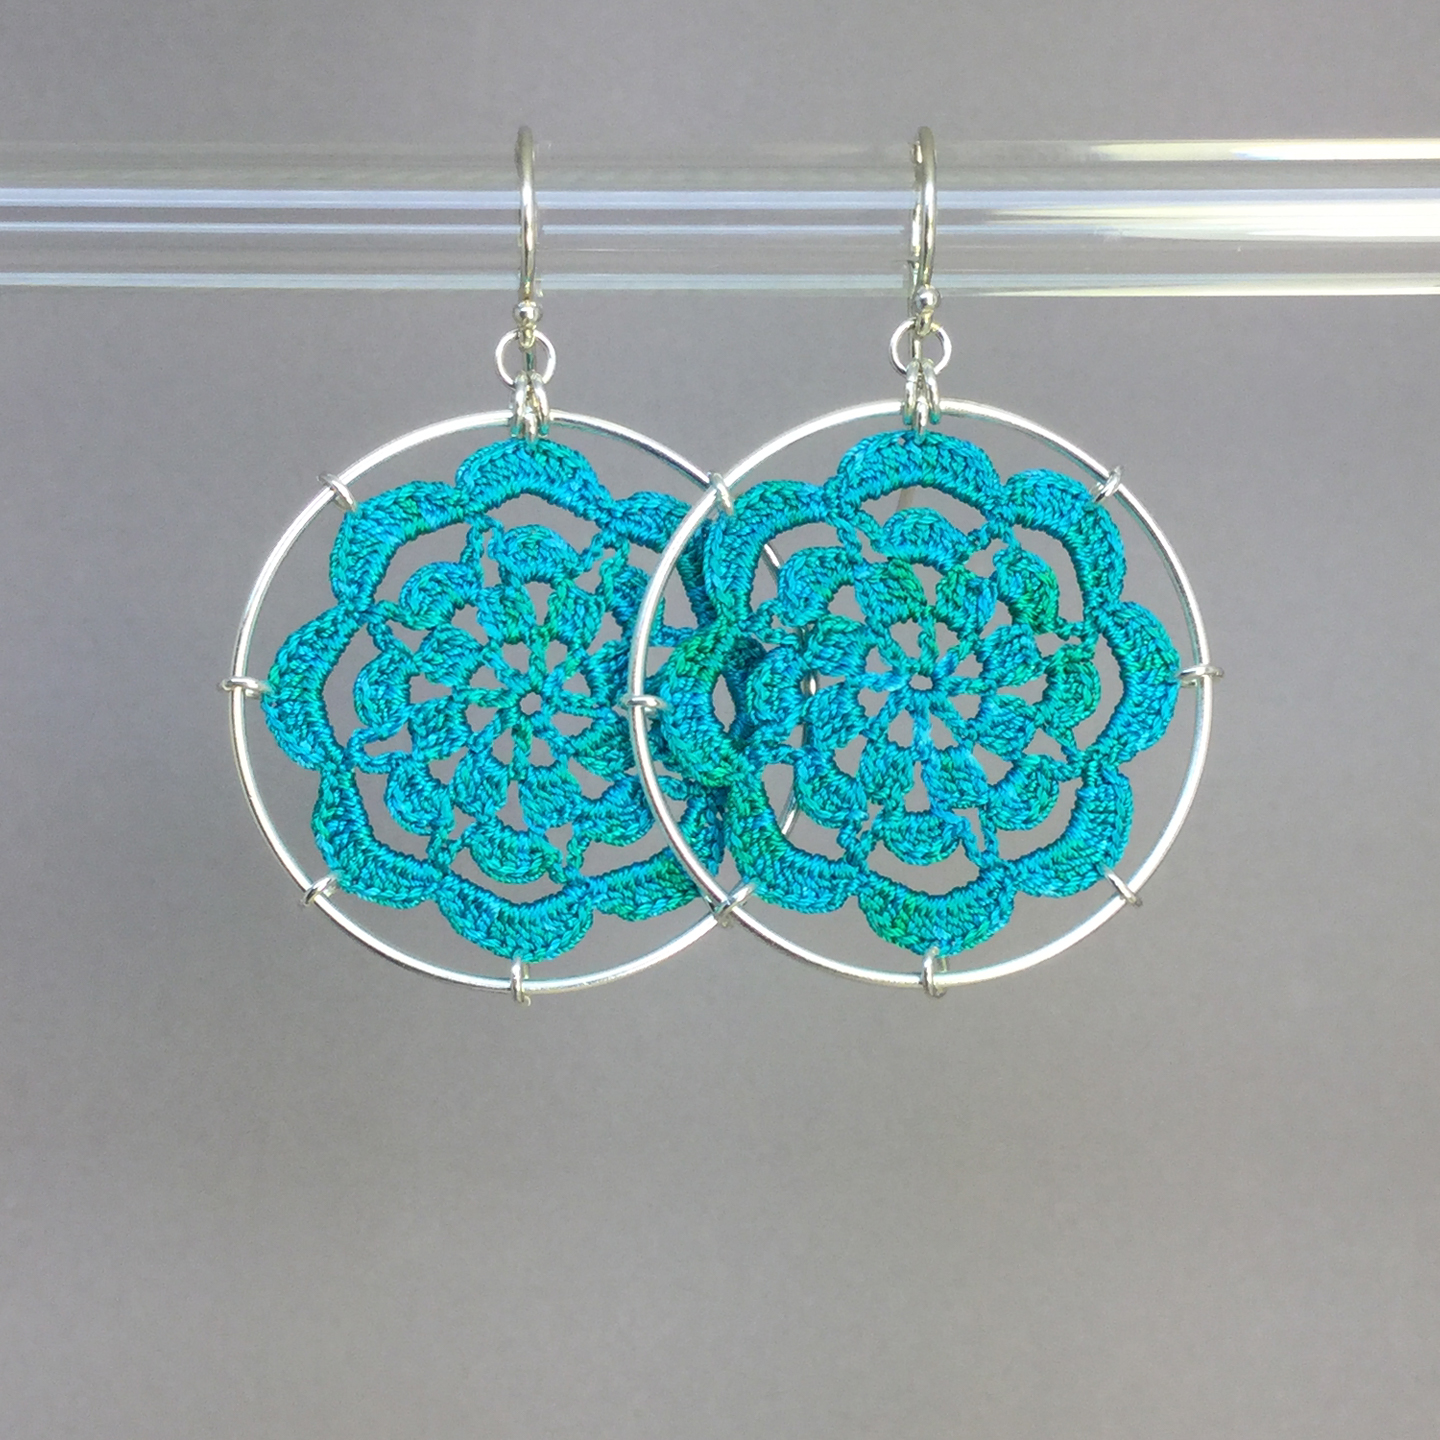 Serendipity earrings, silver, shamrock green thread